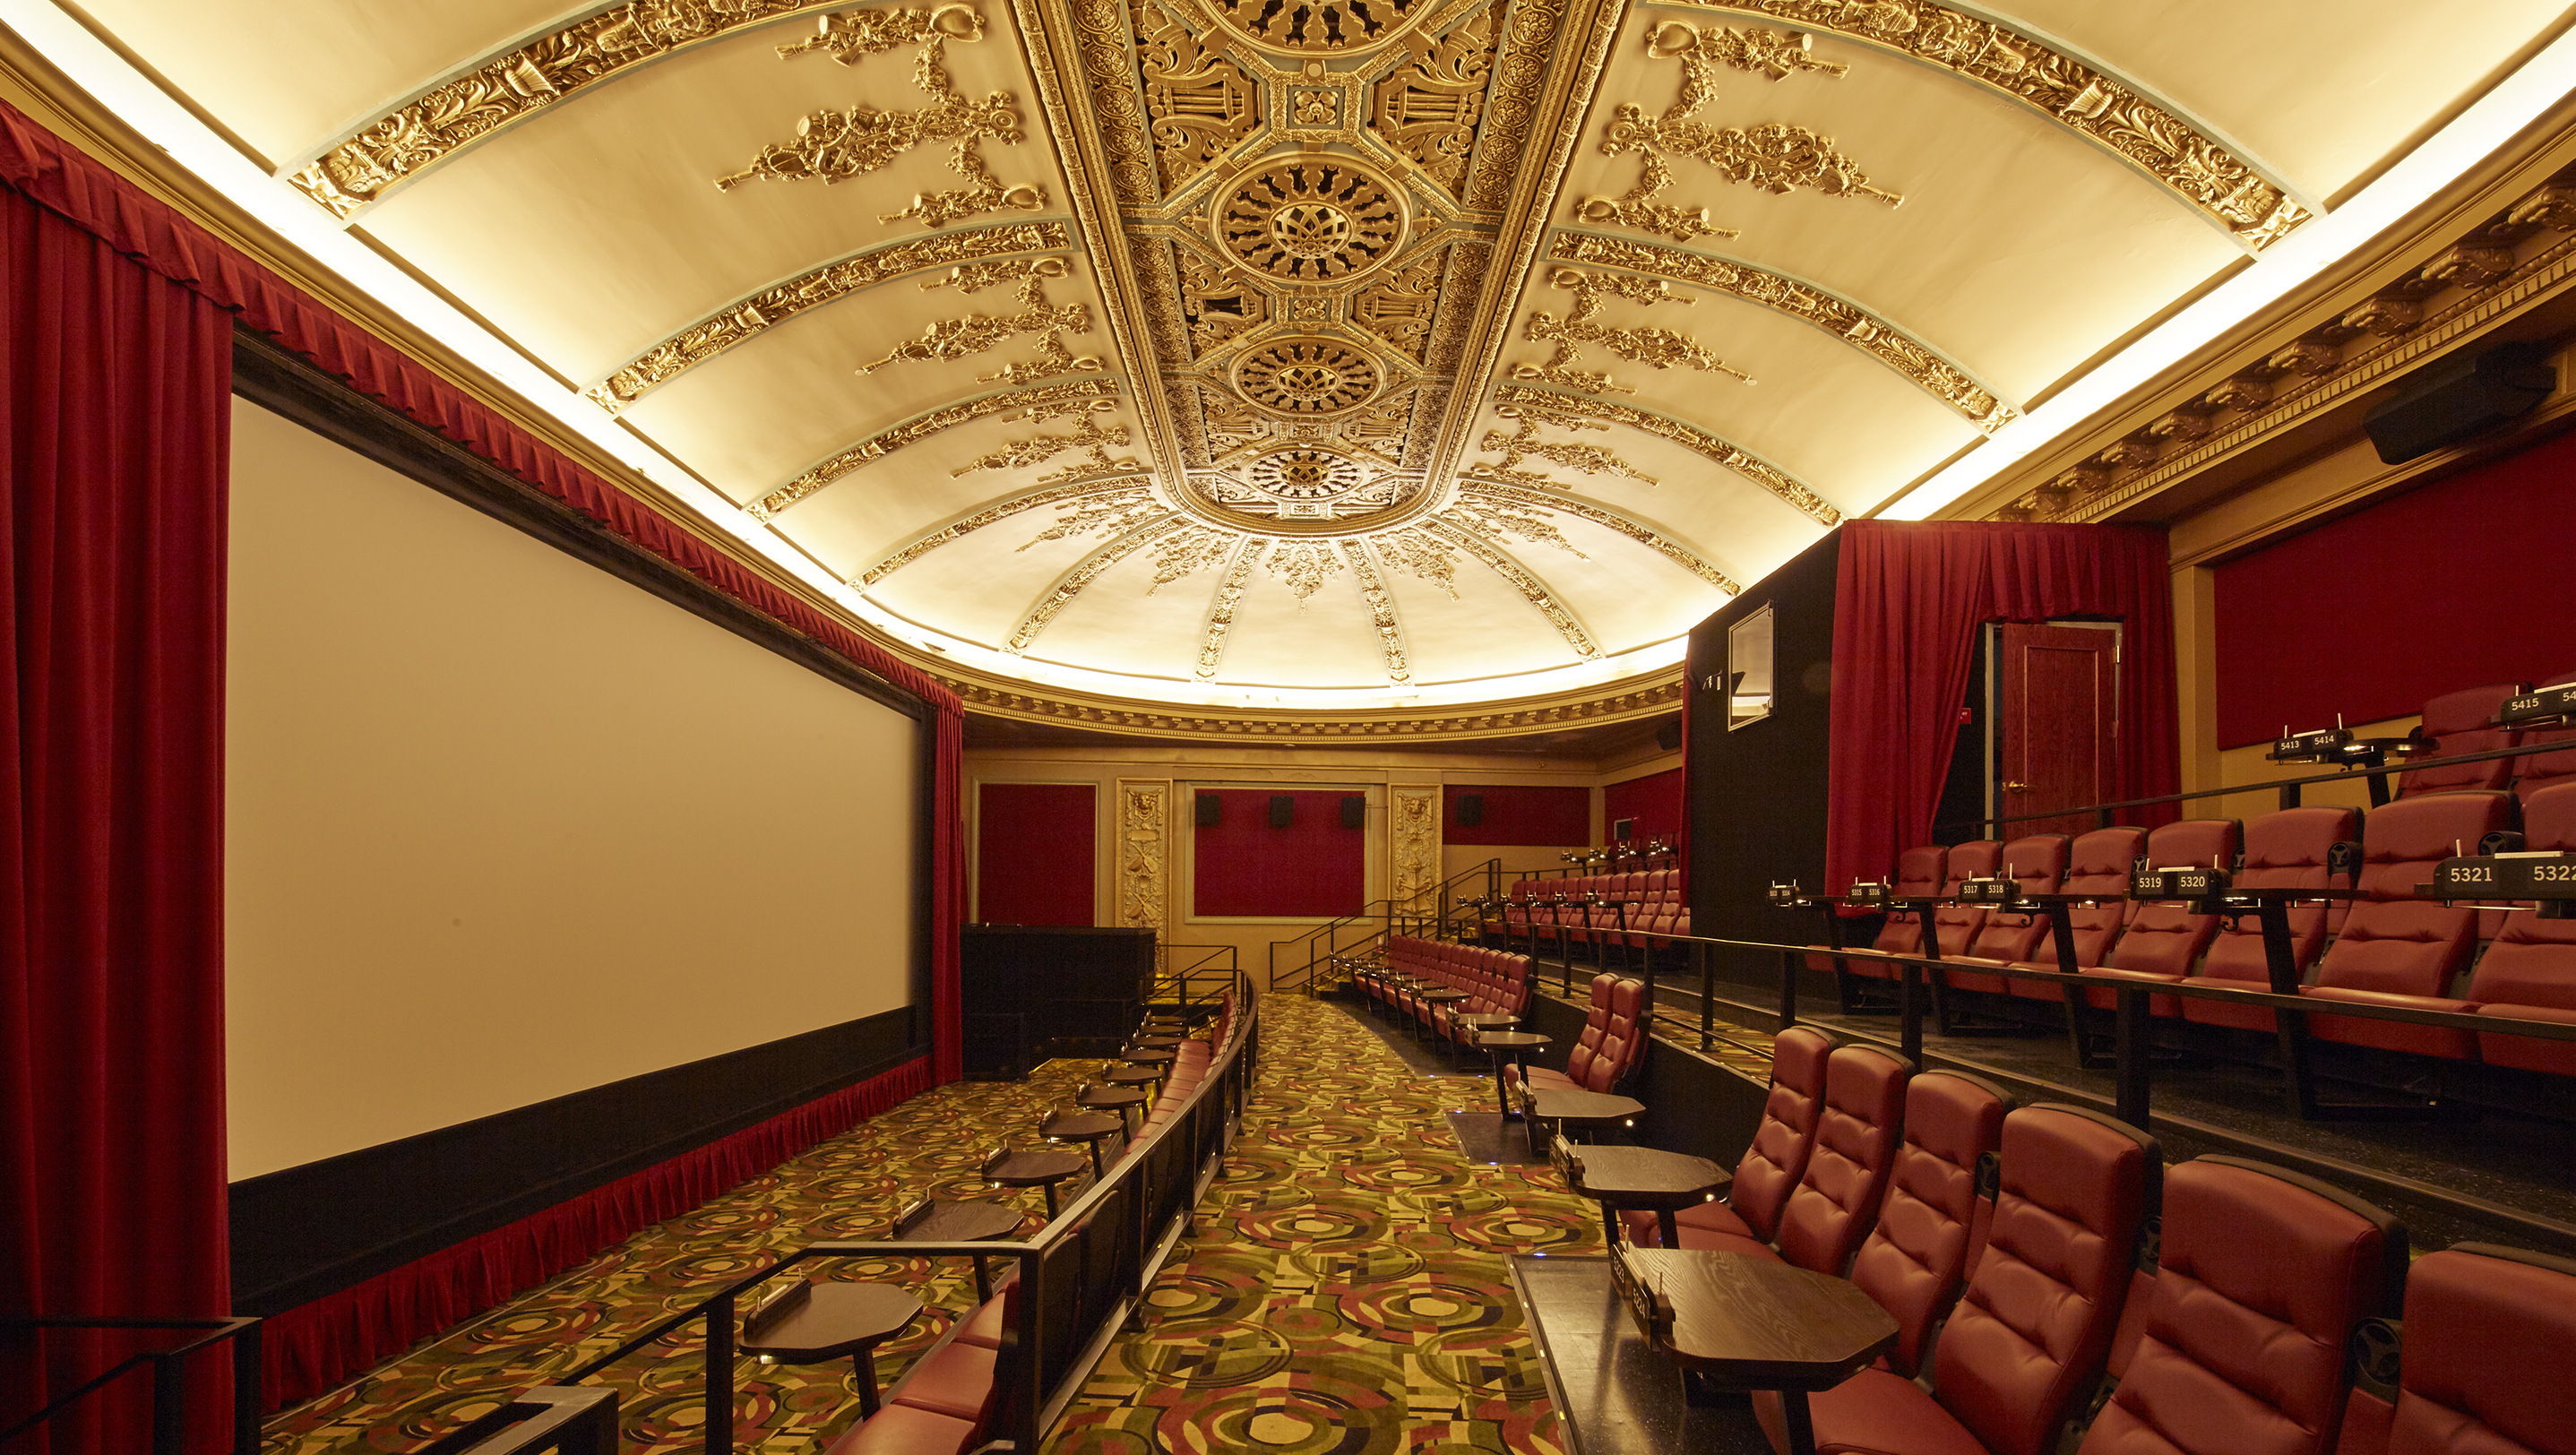 Restored by Alamo Drafthouse Cinema the 100 year old theatre features Tempo Architectural and Theatre lighting throughout. & New Mission Theatre Restored Featuring Tempo LightingTempo